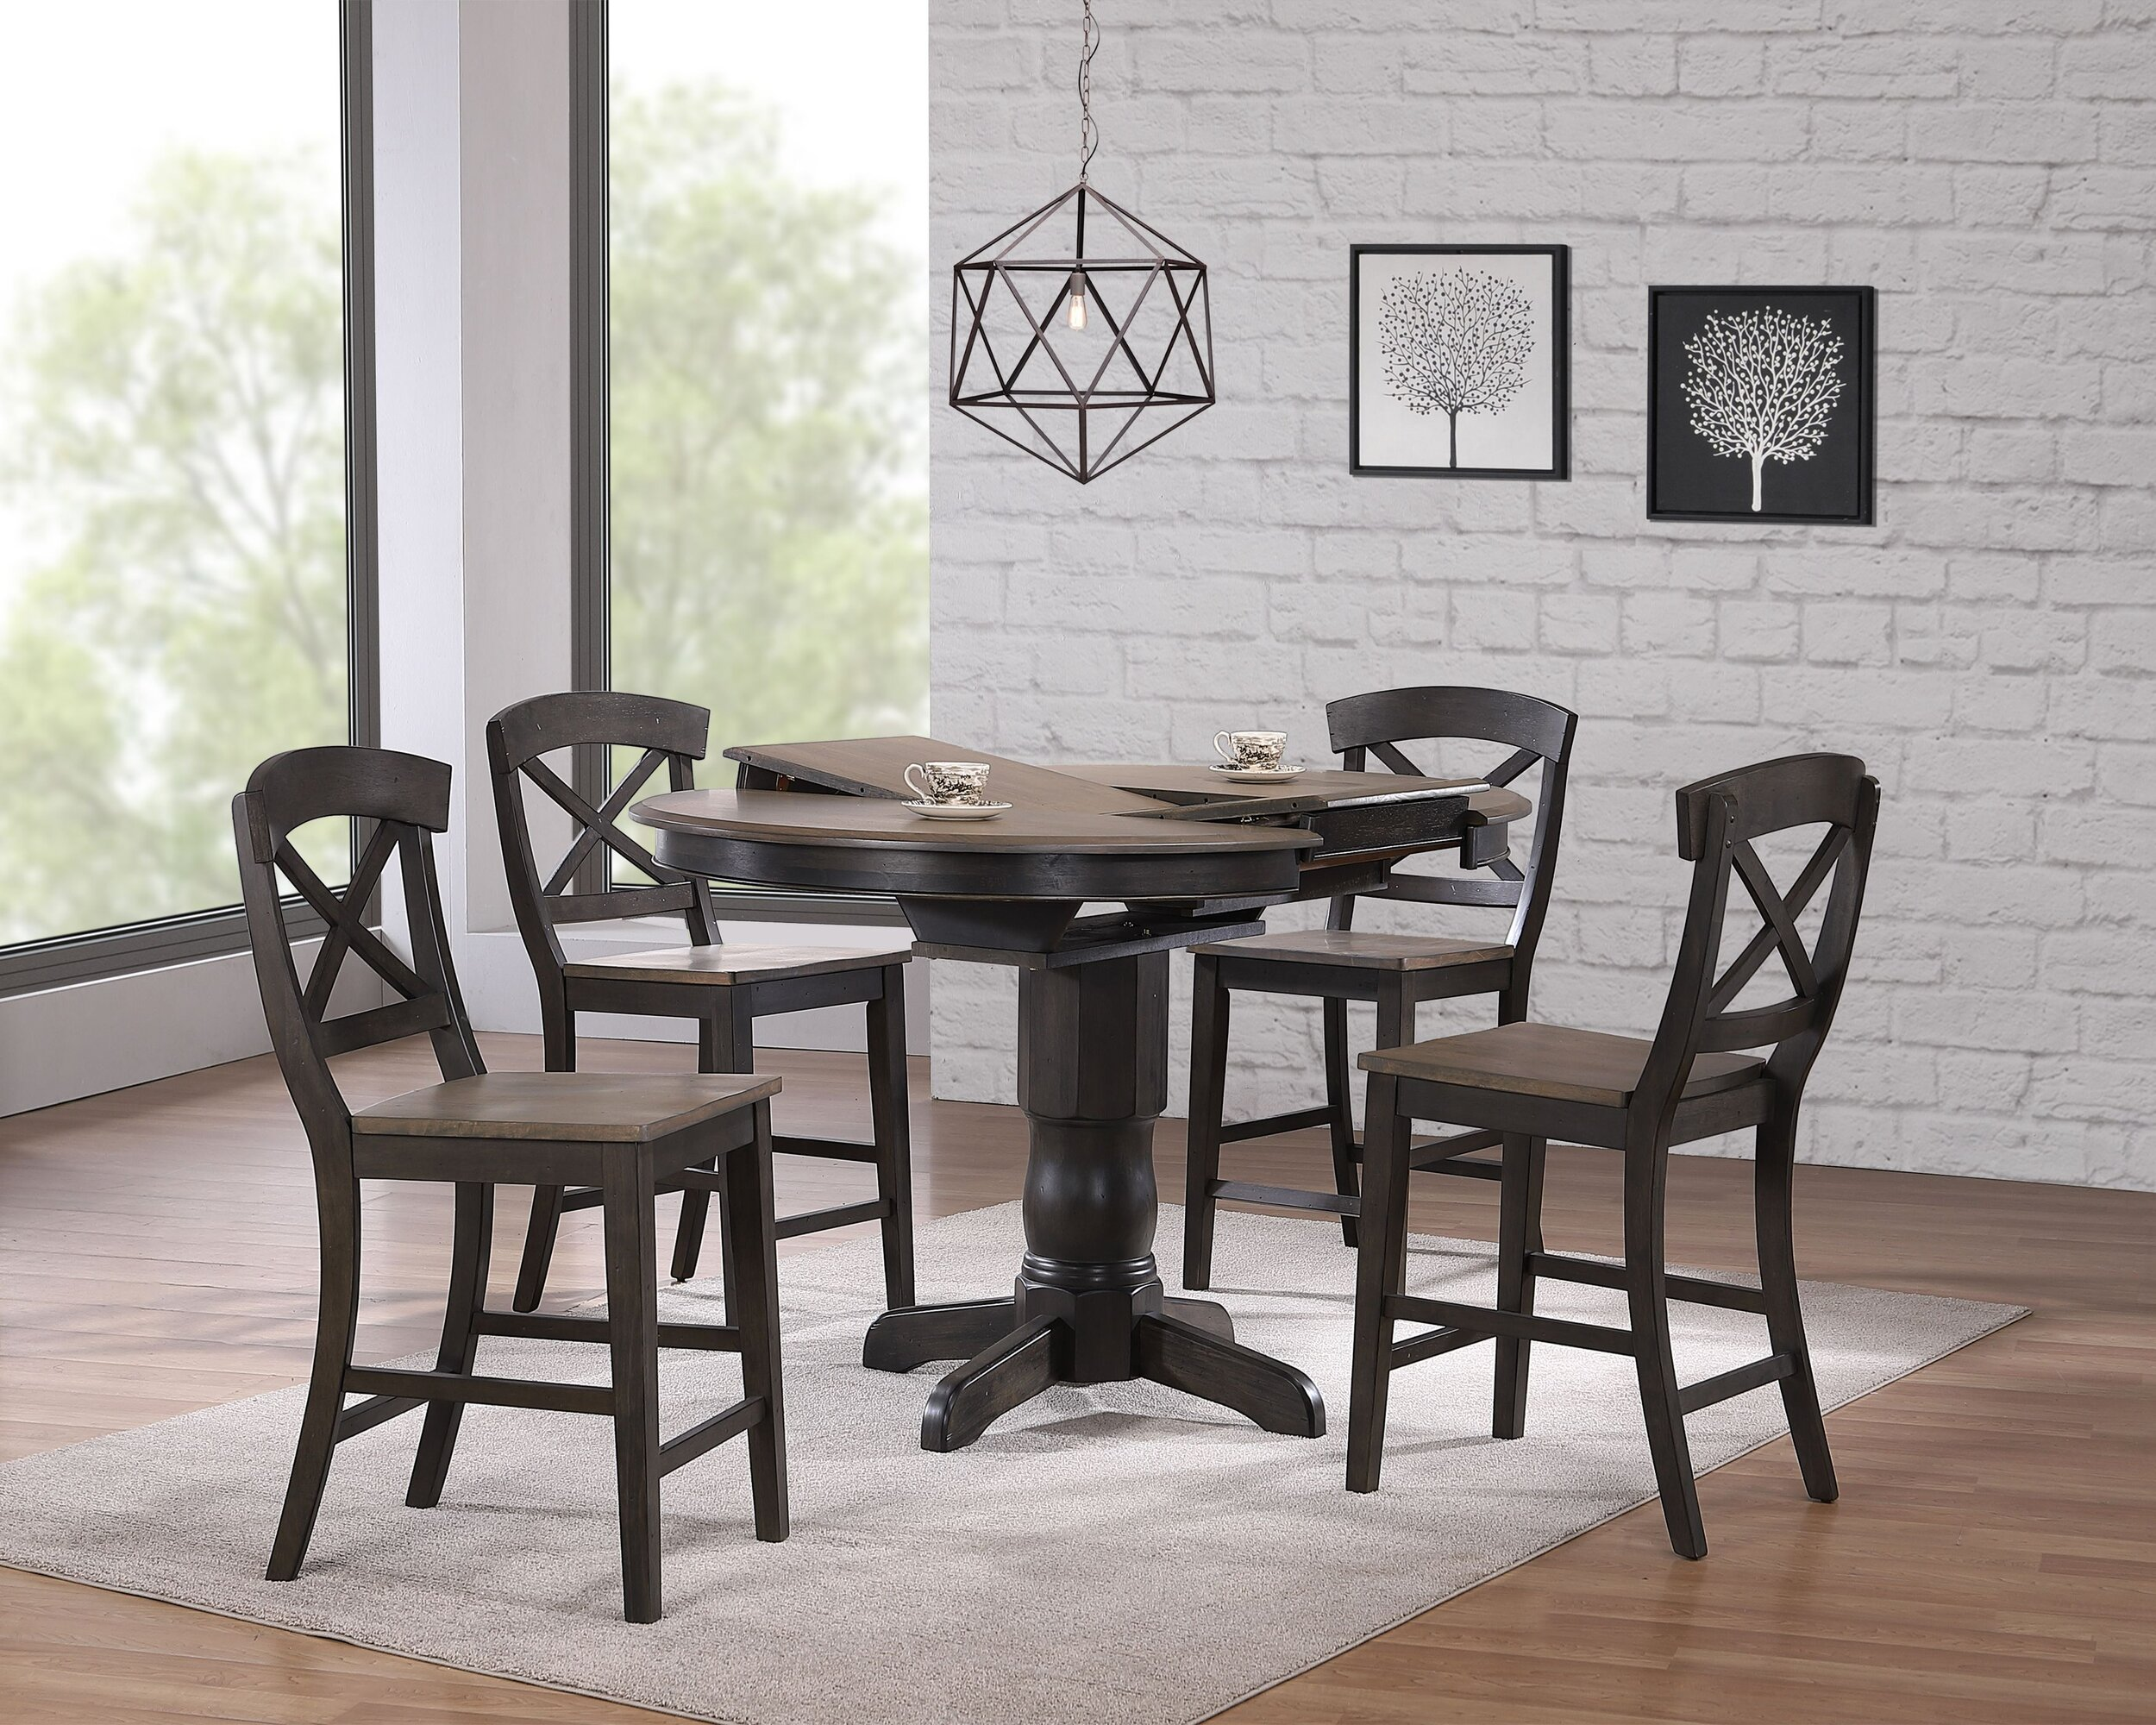 """42""""X42""""X60"""" TRANSITIONAL X-BACK 24""""COUNTER STOOL GREY STONE BLACK STONE COUNTER HEIGHT 5-PIECE DINING SET"""